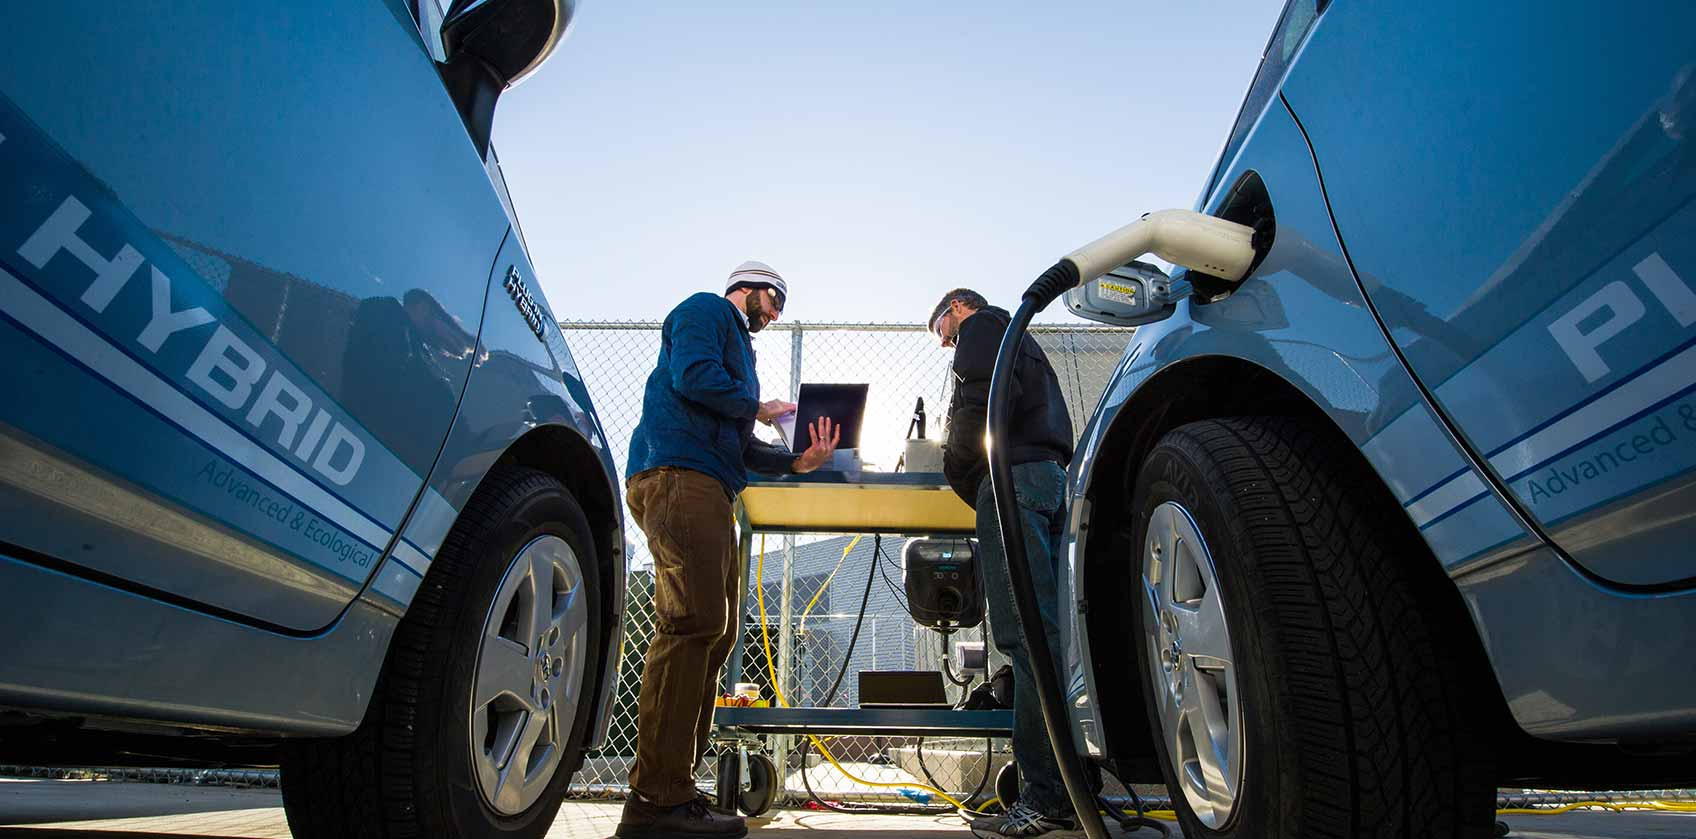 Photo of two men working on testing electric vehicle technologies